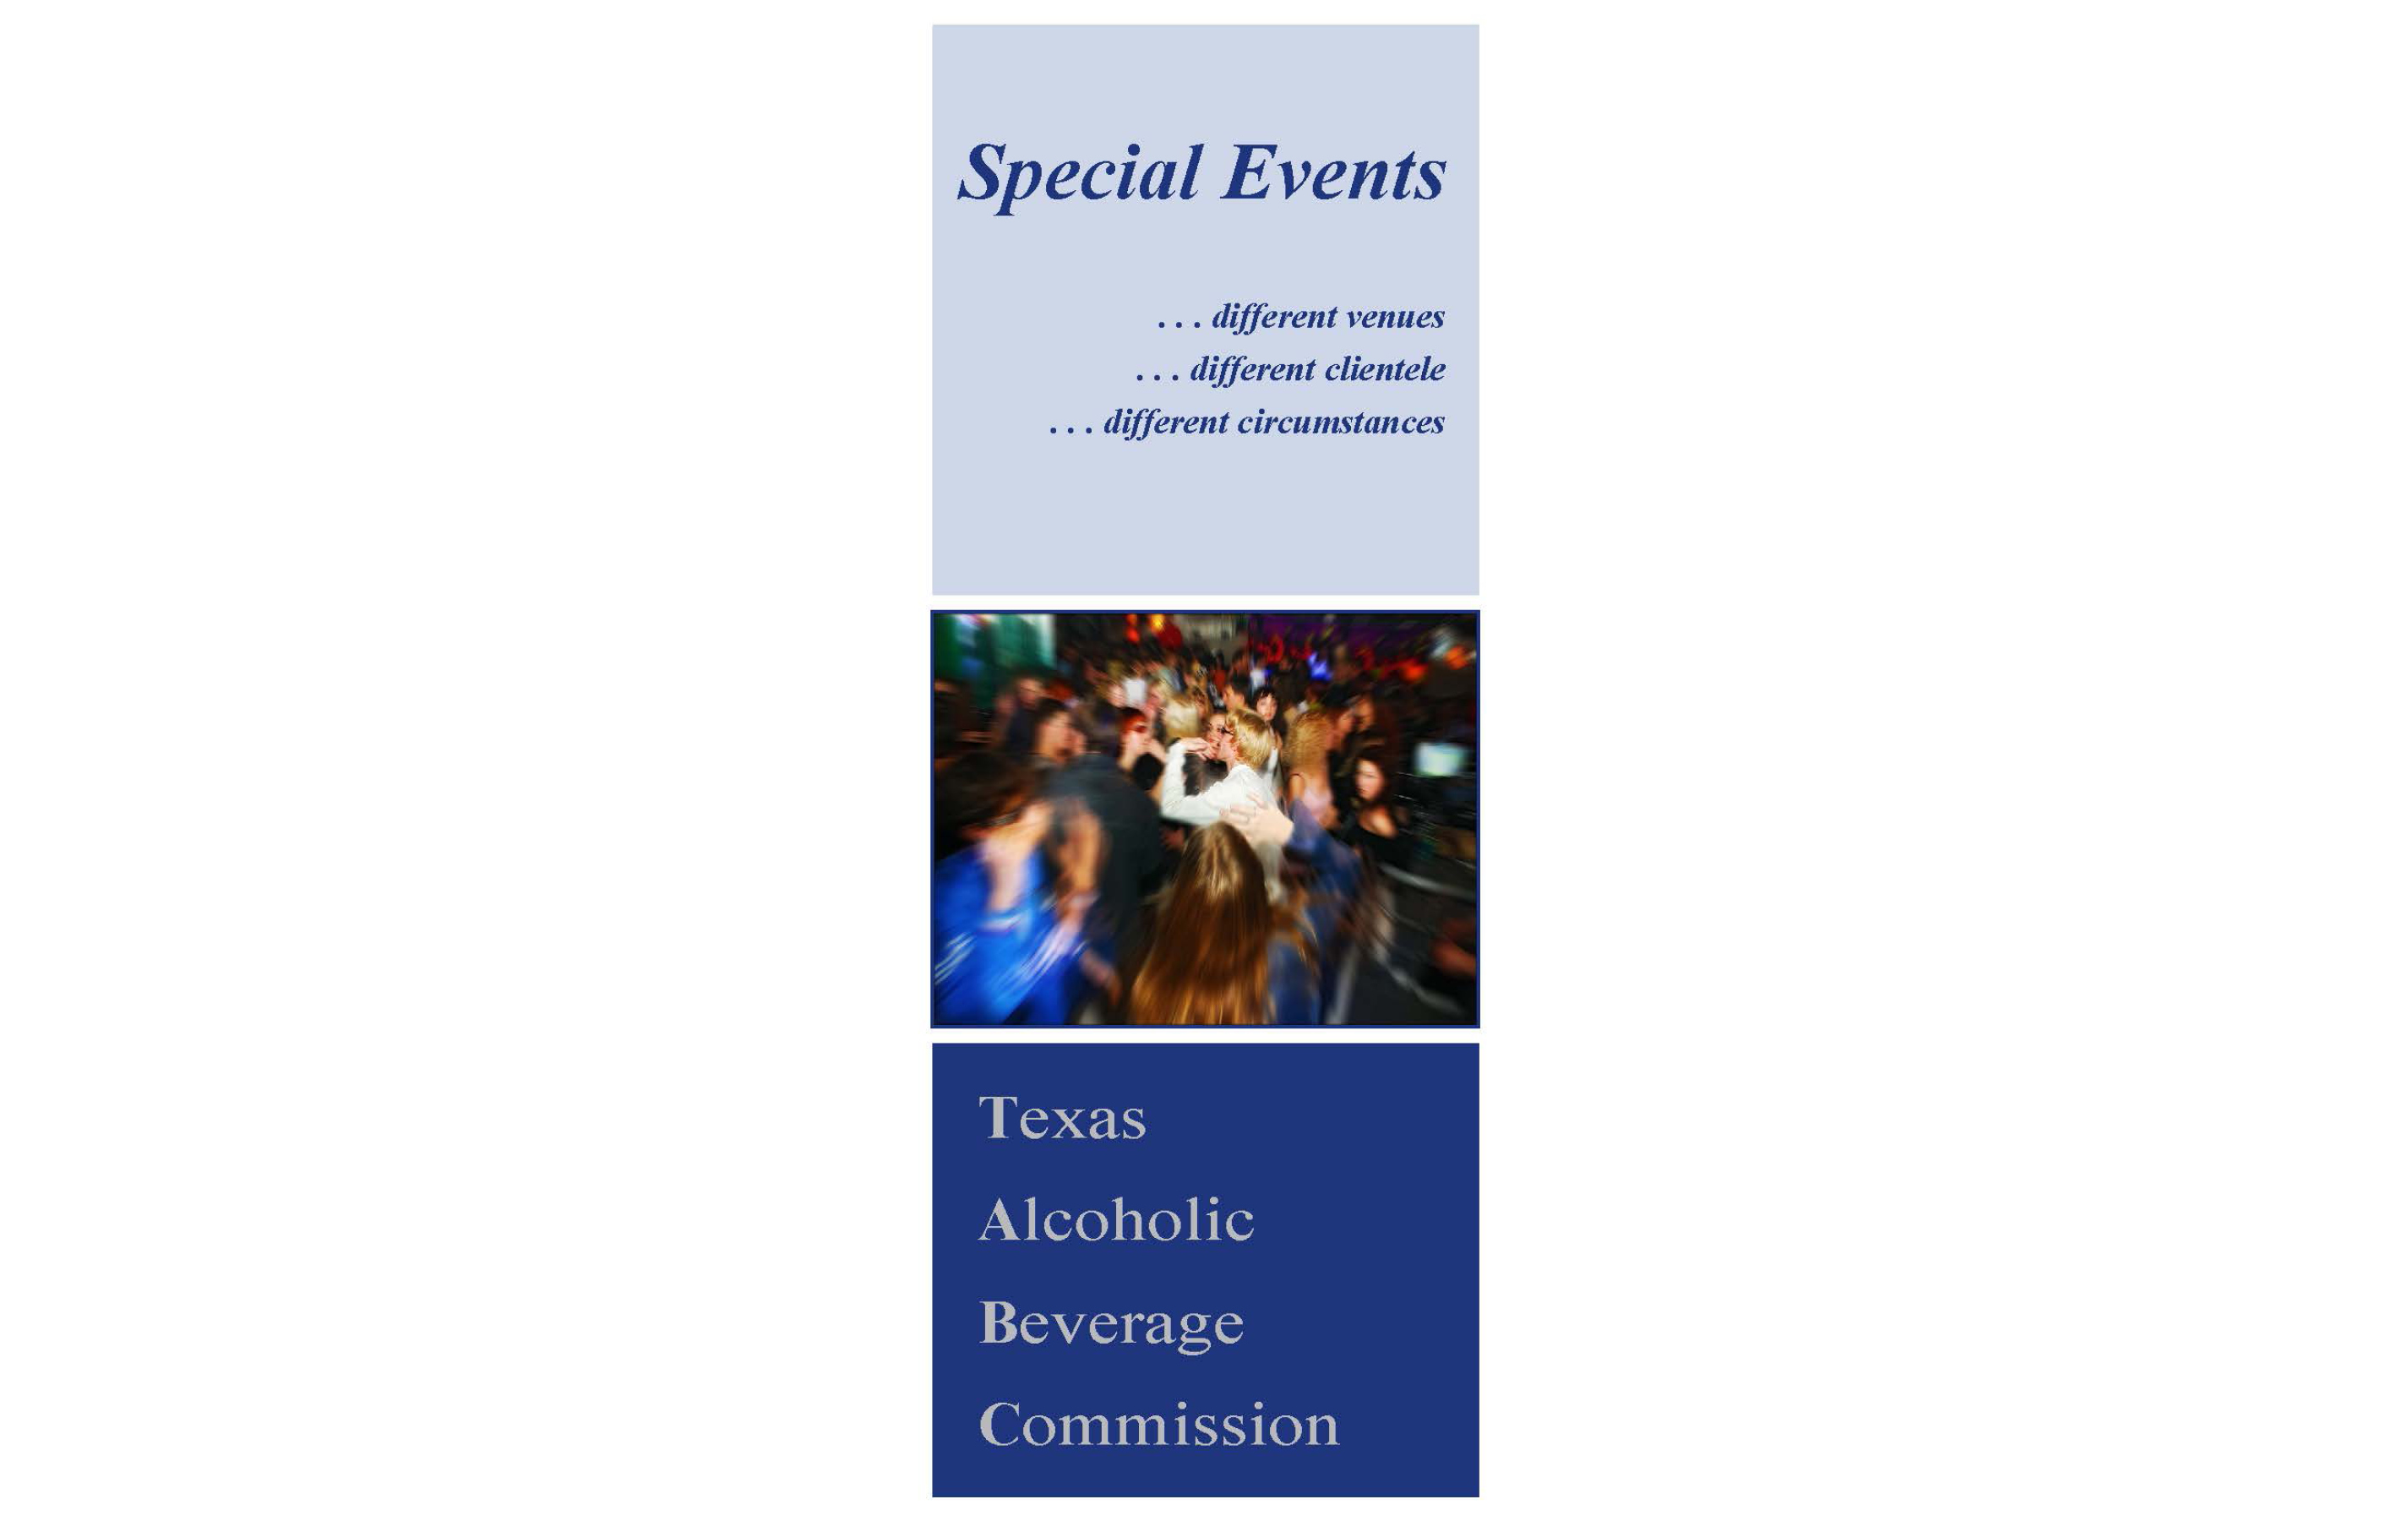 Special Events Brochure